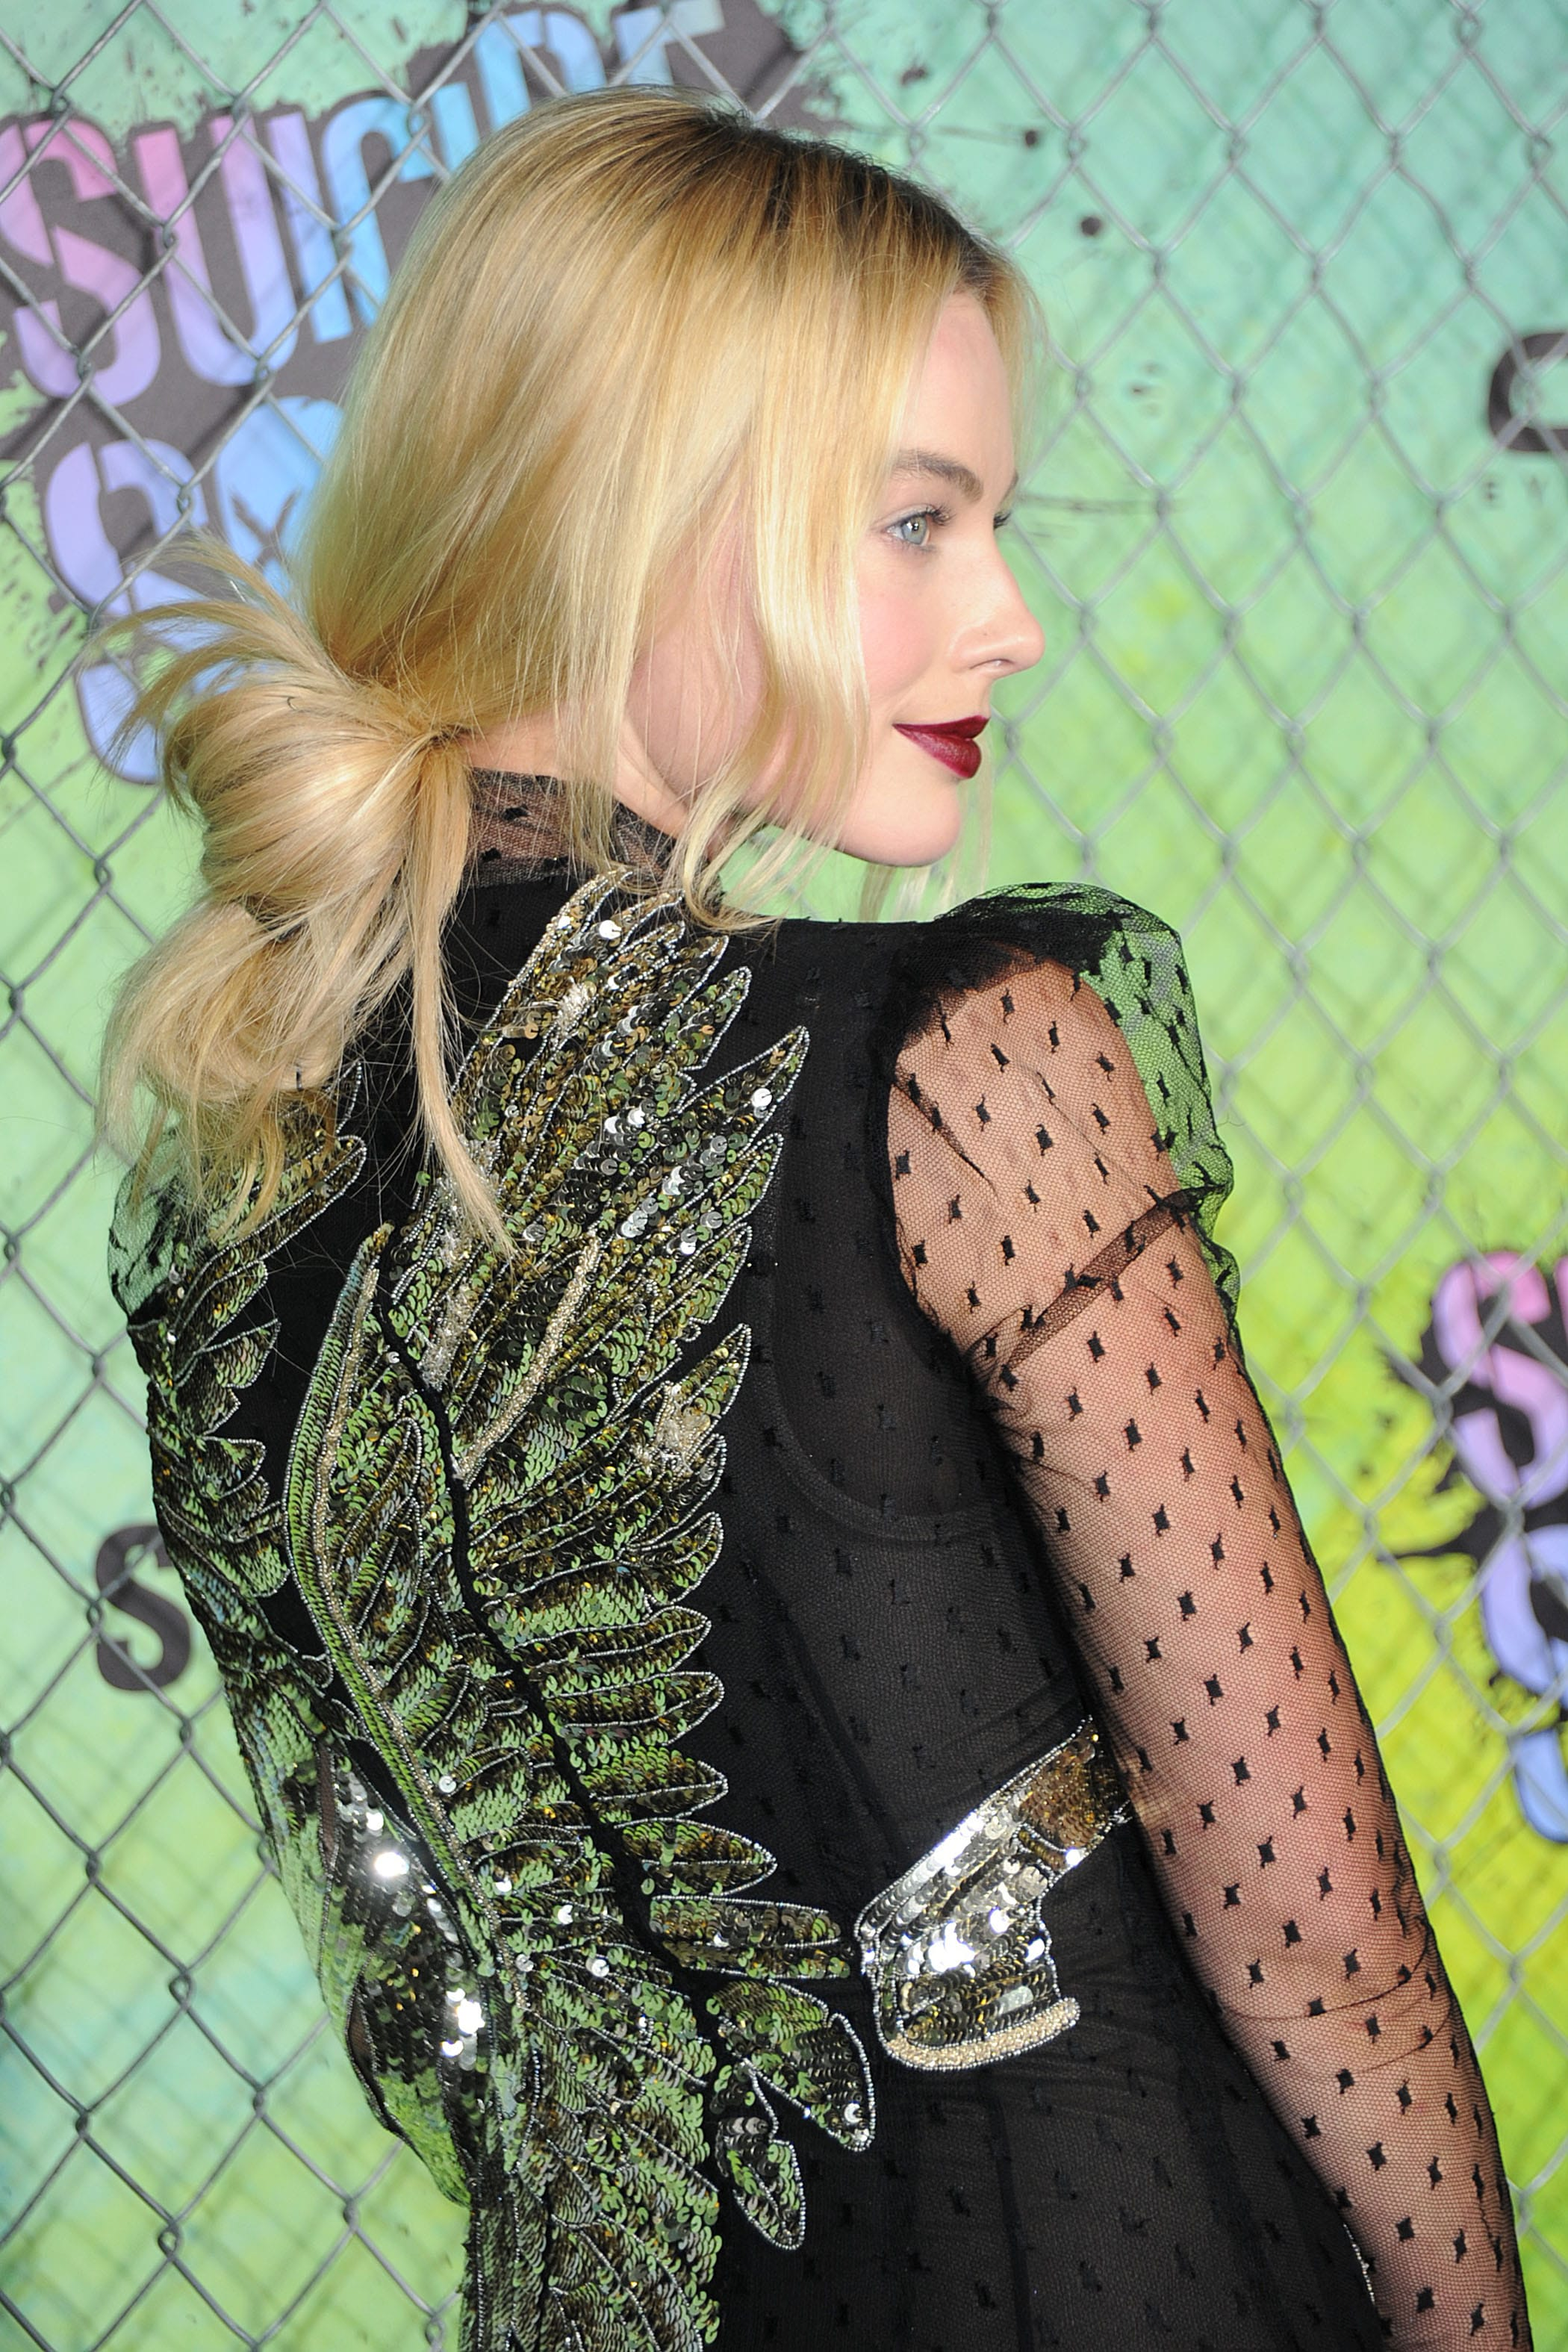 margot robbie at the suicide squad premiere with her long blonde hair in a loose messy low bun